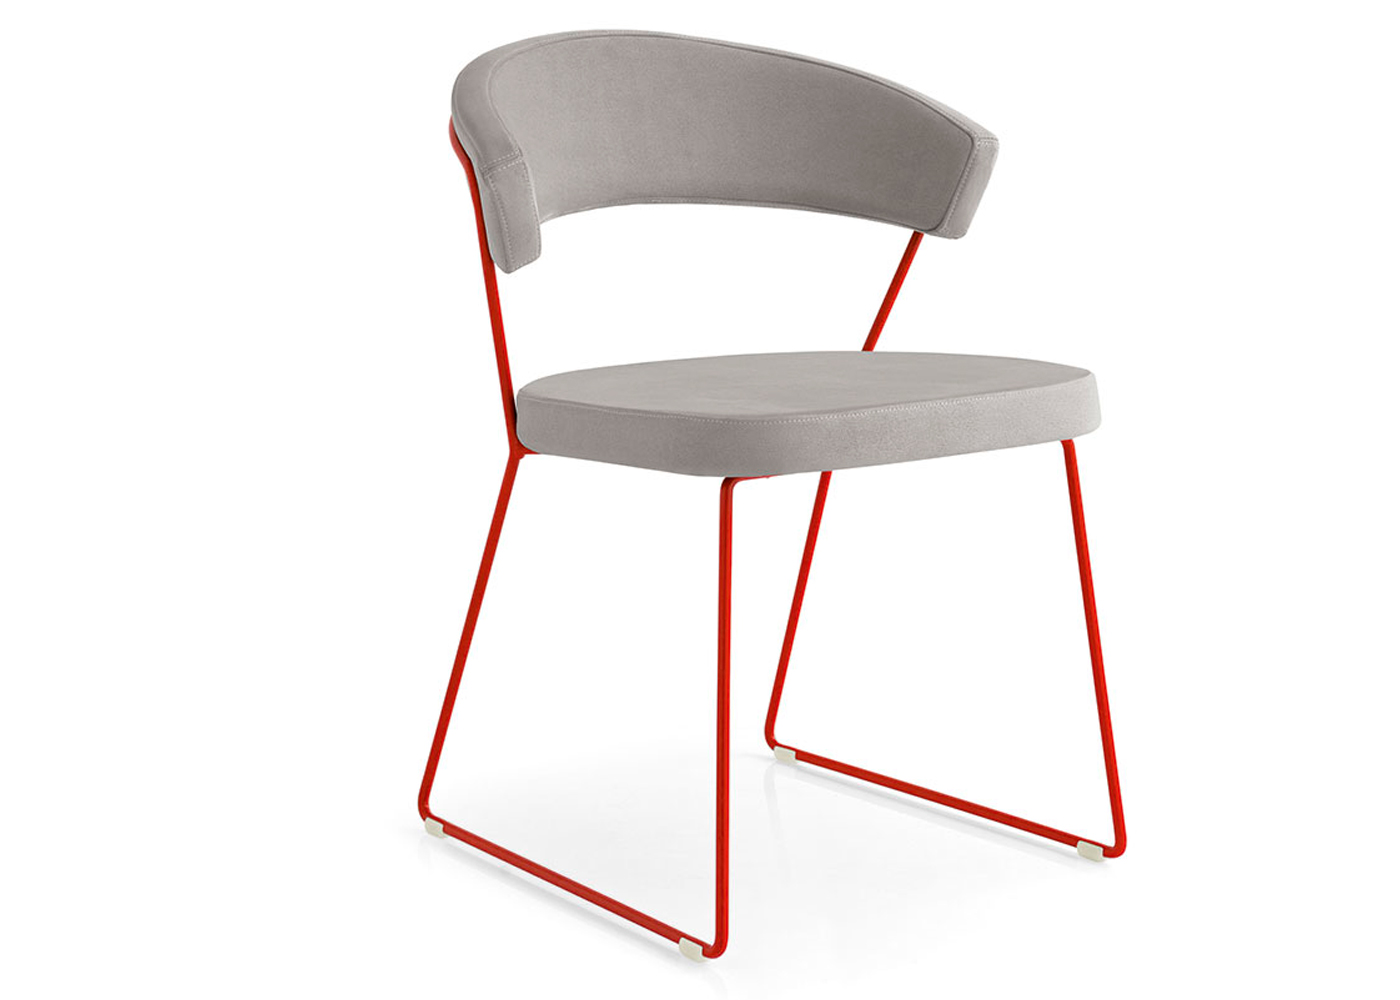 Calligaris Chairs Calligaris New York Sleigh Chair Midfurn Furniture